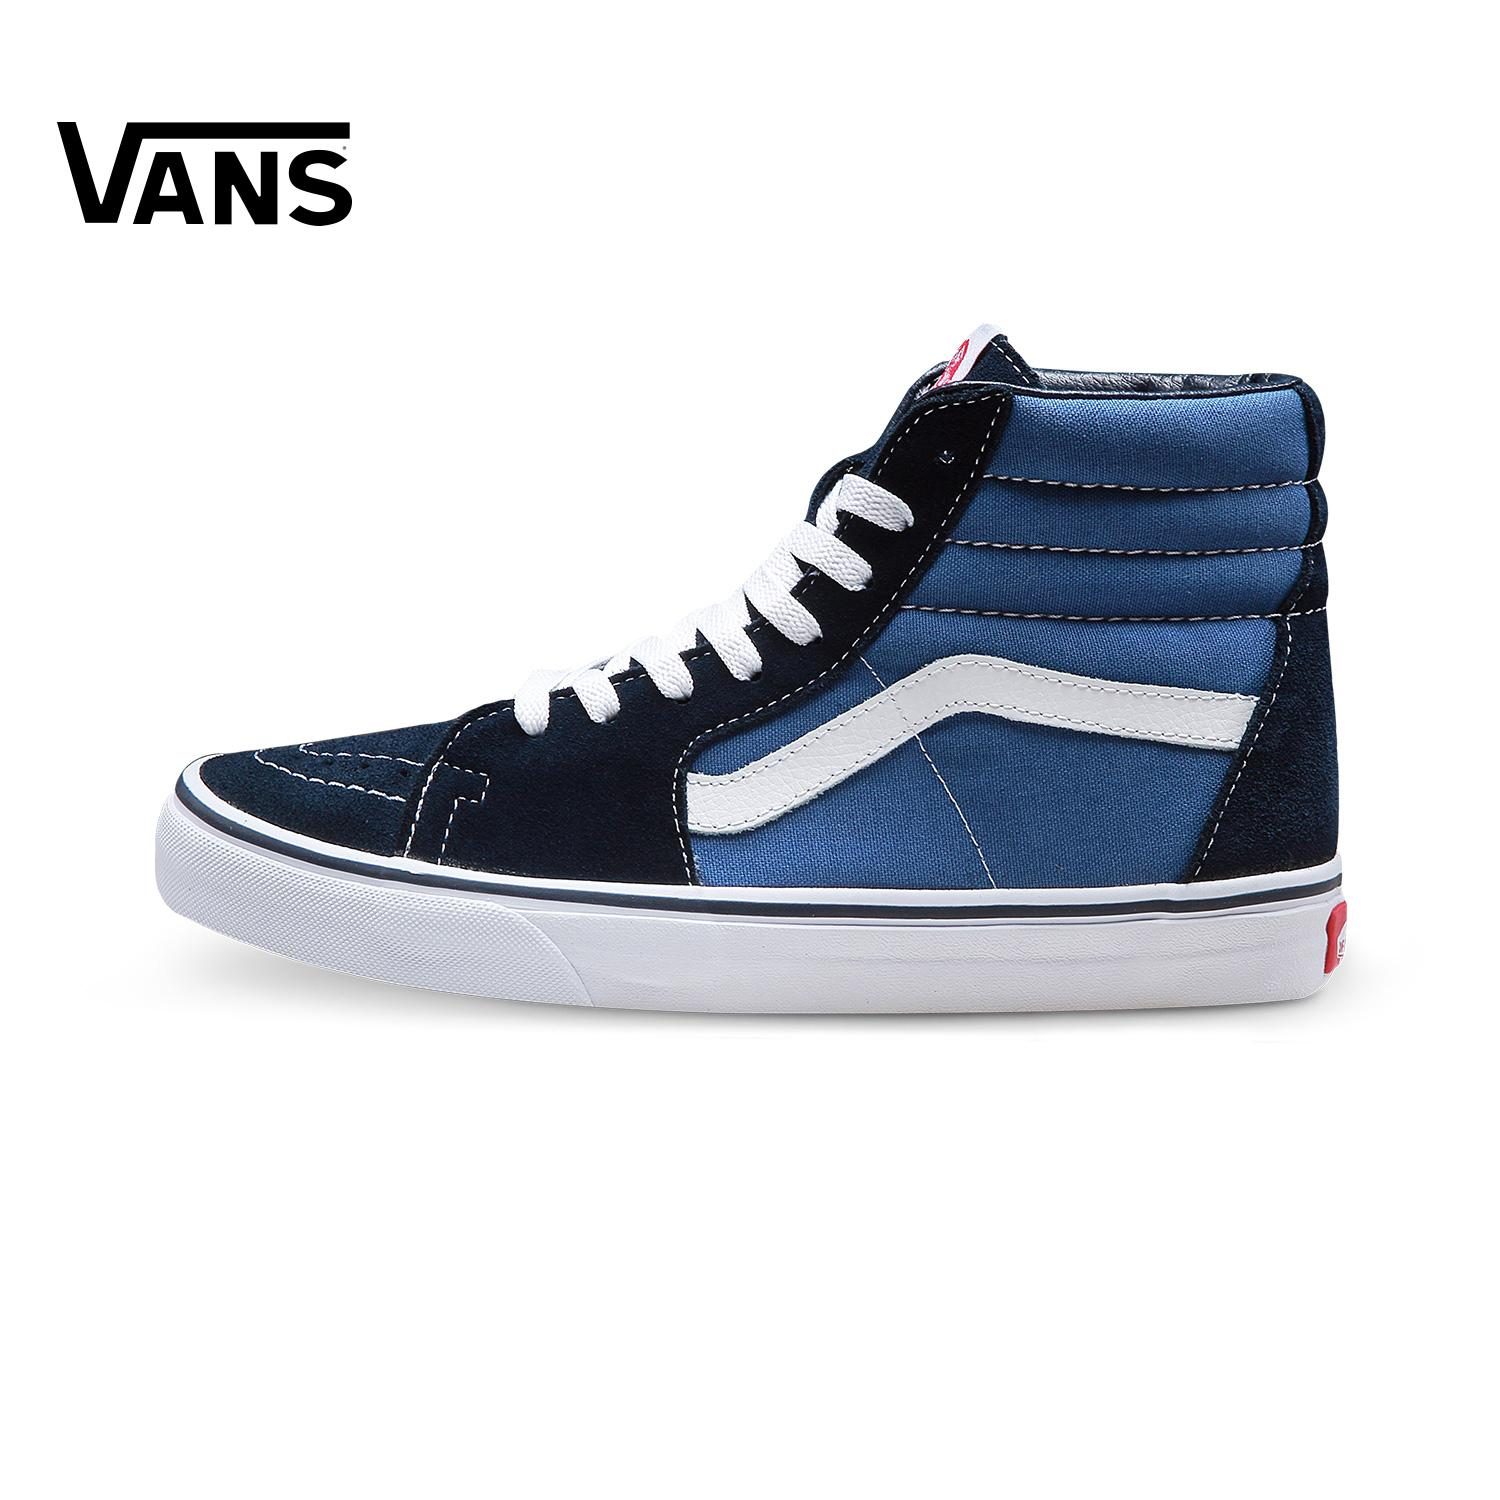 160e4ccb7c Vans Men s Shoes women Shoes Couple s Hight-top Sk8-Hi Classic Style Navy  Skateboard